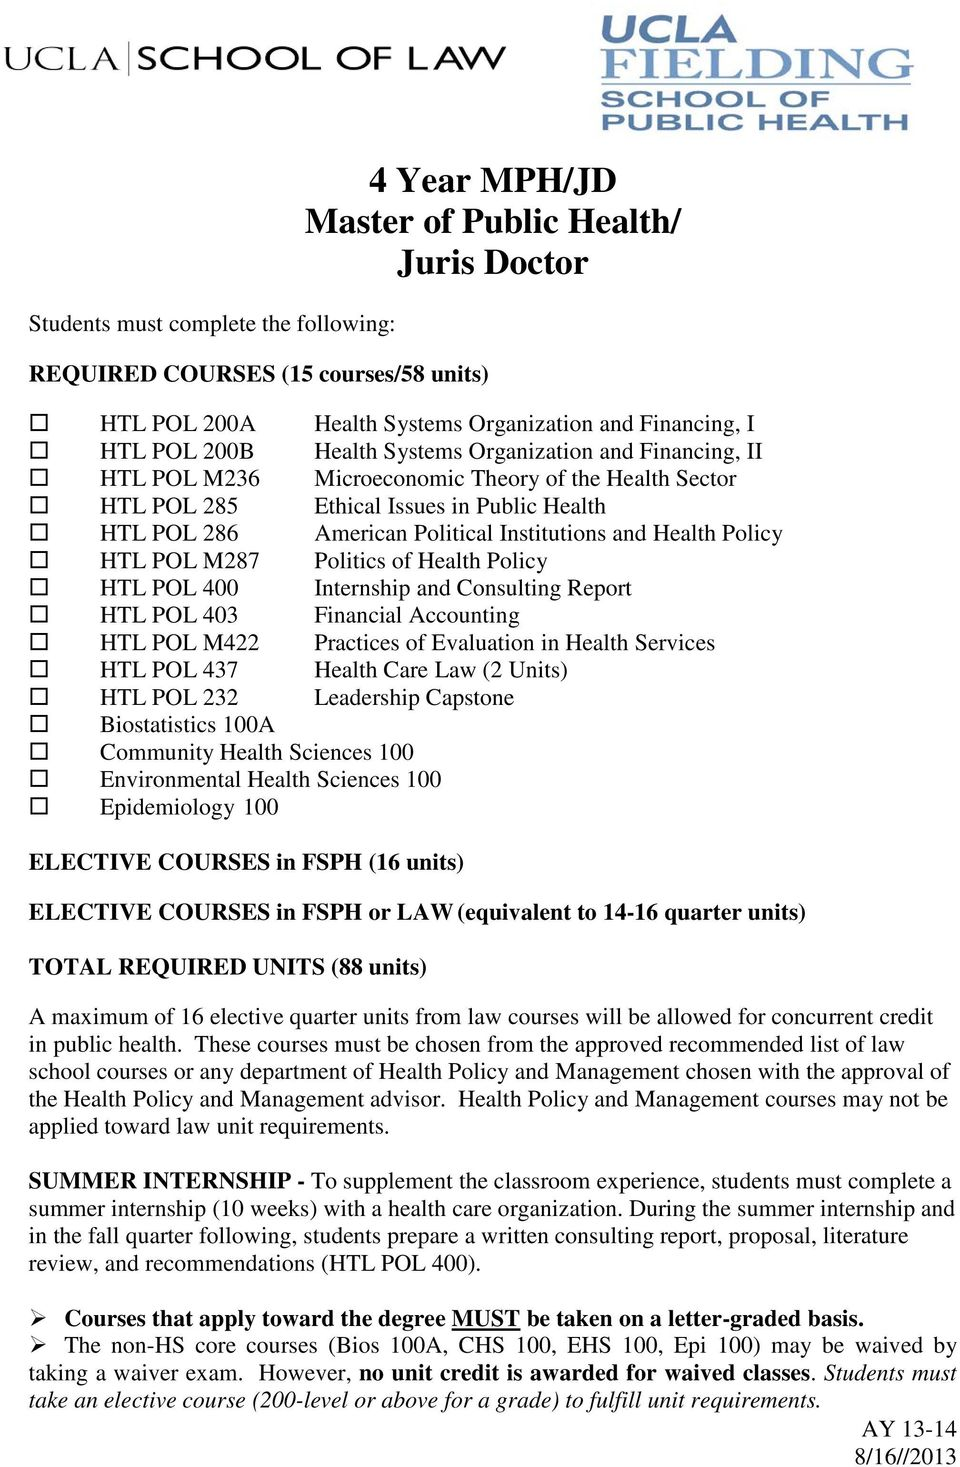 Policy HTL POL M287 Politics of Health Policy HTL POL 400 Internship and Consulting Report HTL POL 403 Financial Accounting HTL POL M422 Practices of Evaluation in Health Services HTL POL 437 Health